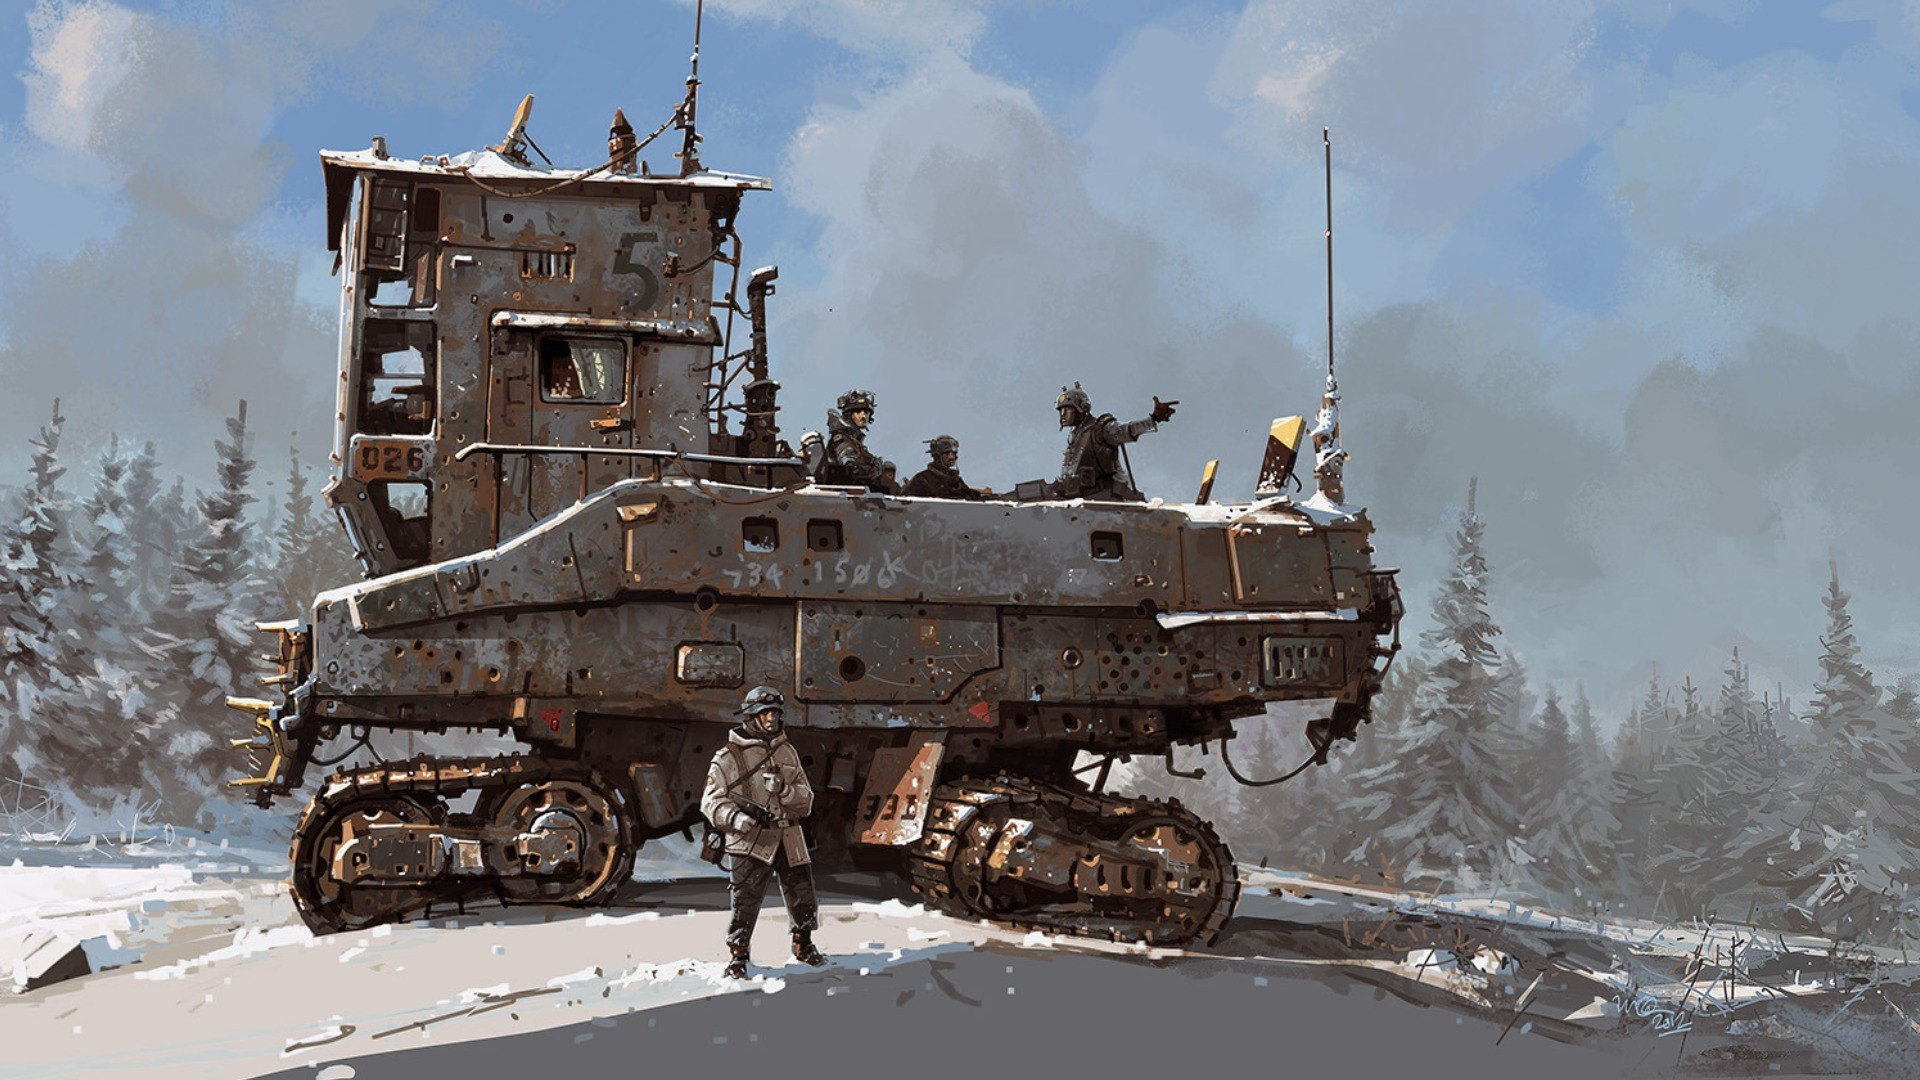 605264-artwork-military-post-apocalyptic-rust-science-fiction-snow-winter